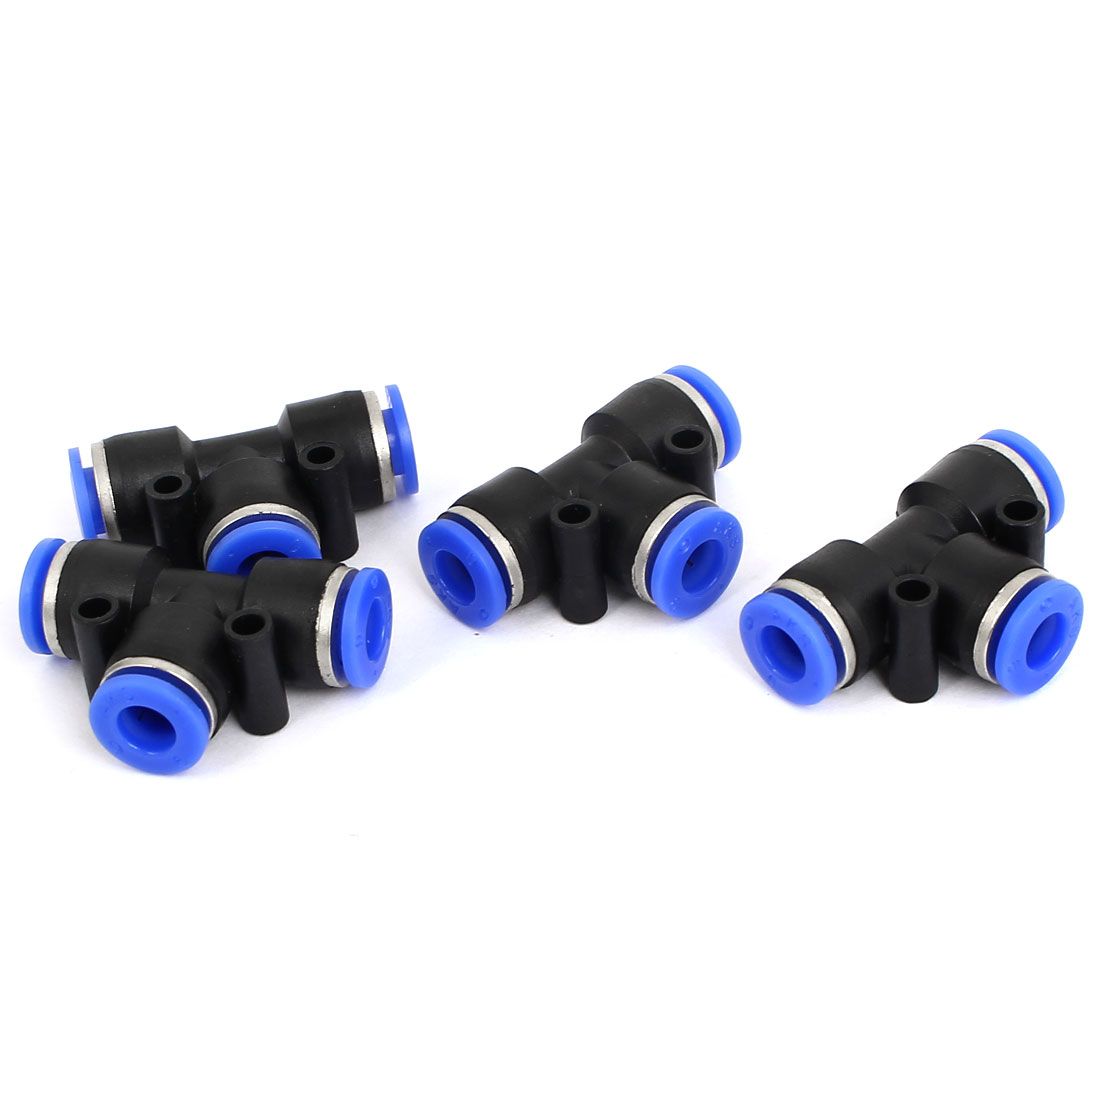 4pcs 6mm to 6mm T Shaped 3 Way Air Pneumatic Quick Fitting Coupler Black Blue